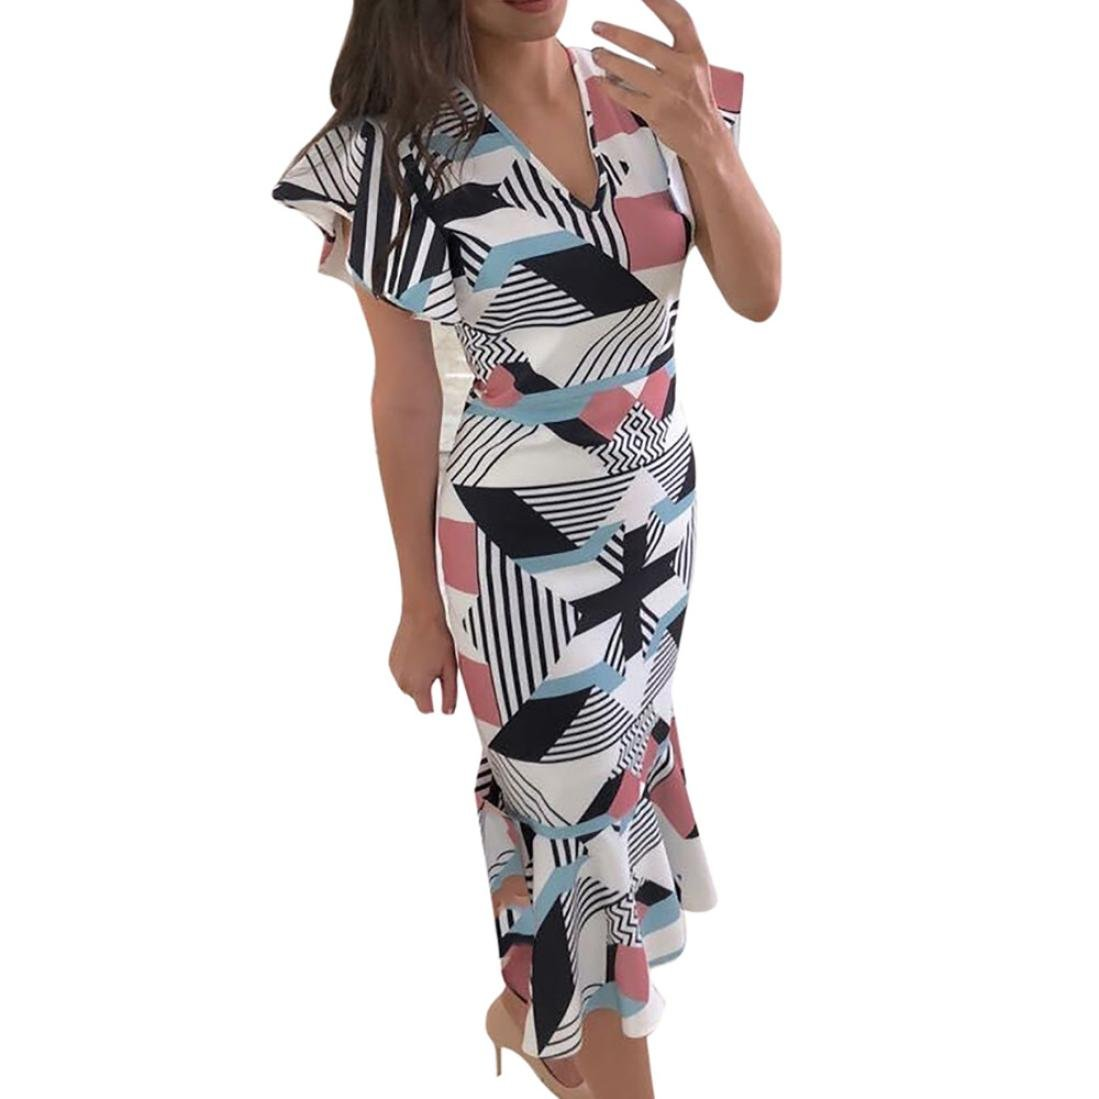 Minisoya Women Ruffle Sleeve Geometric Printed Office Pencil Dress Bodycon Casual Cocktail Party Mermaid Dress (Multicolor, L)